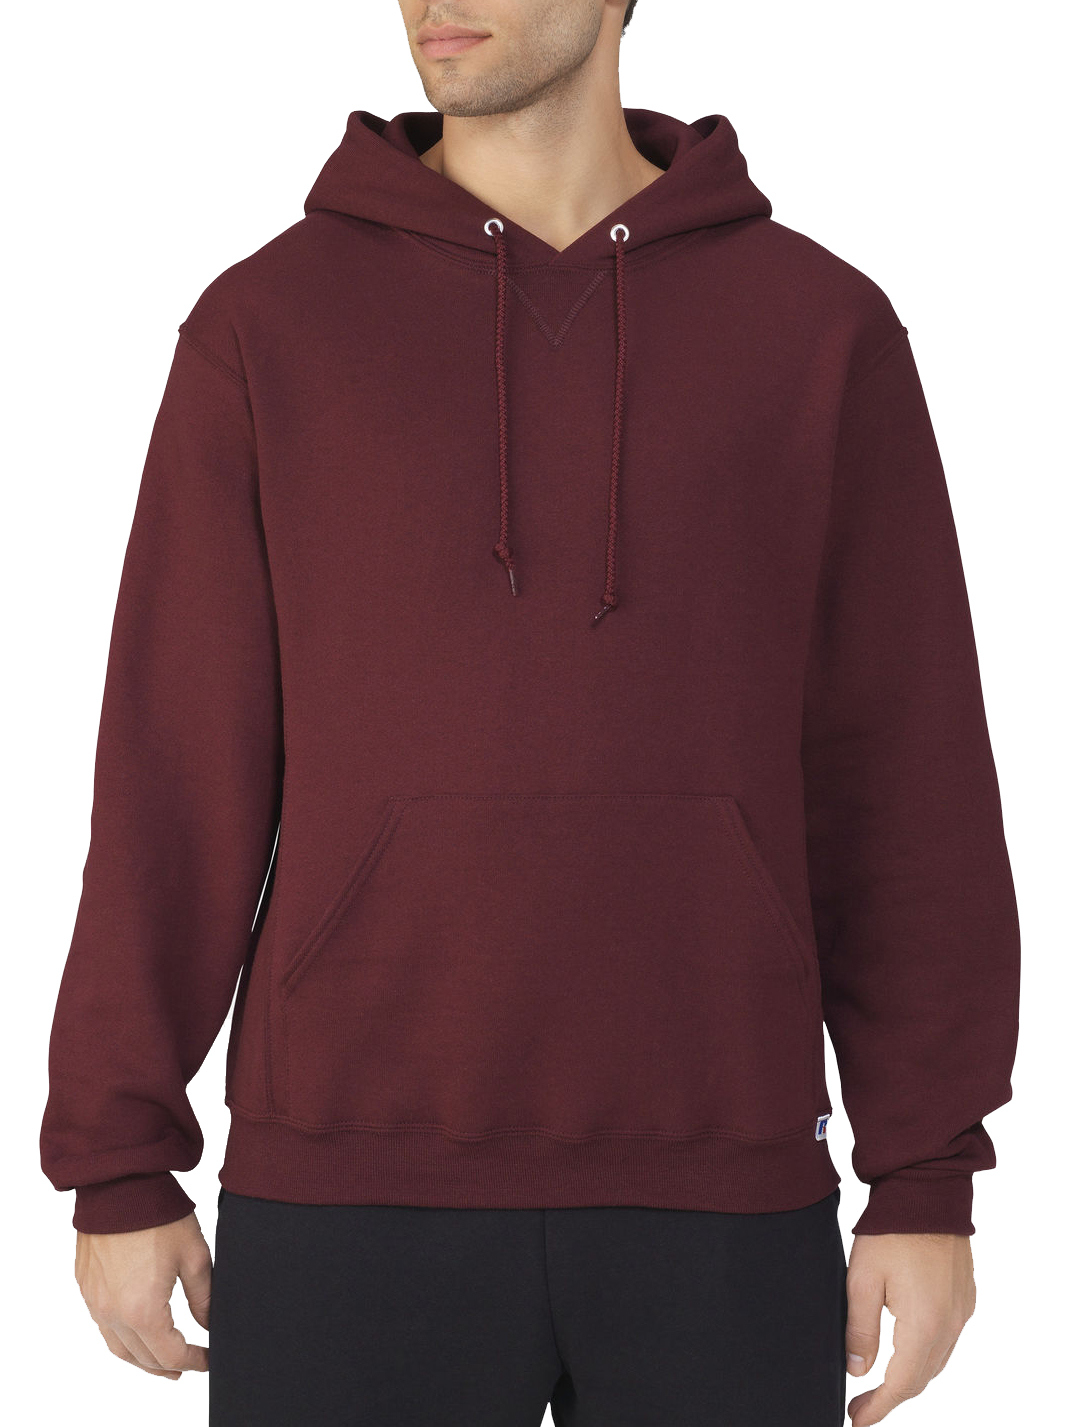 Russell North Shore Athletics Training Pullover Hoodie Men/'s Large Gray Red